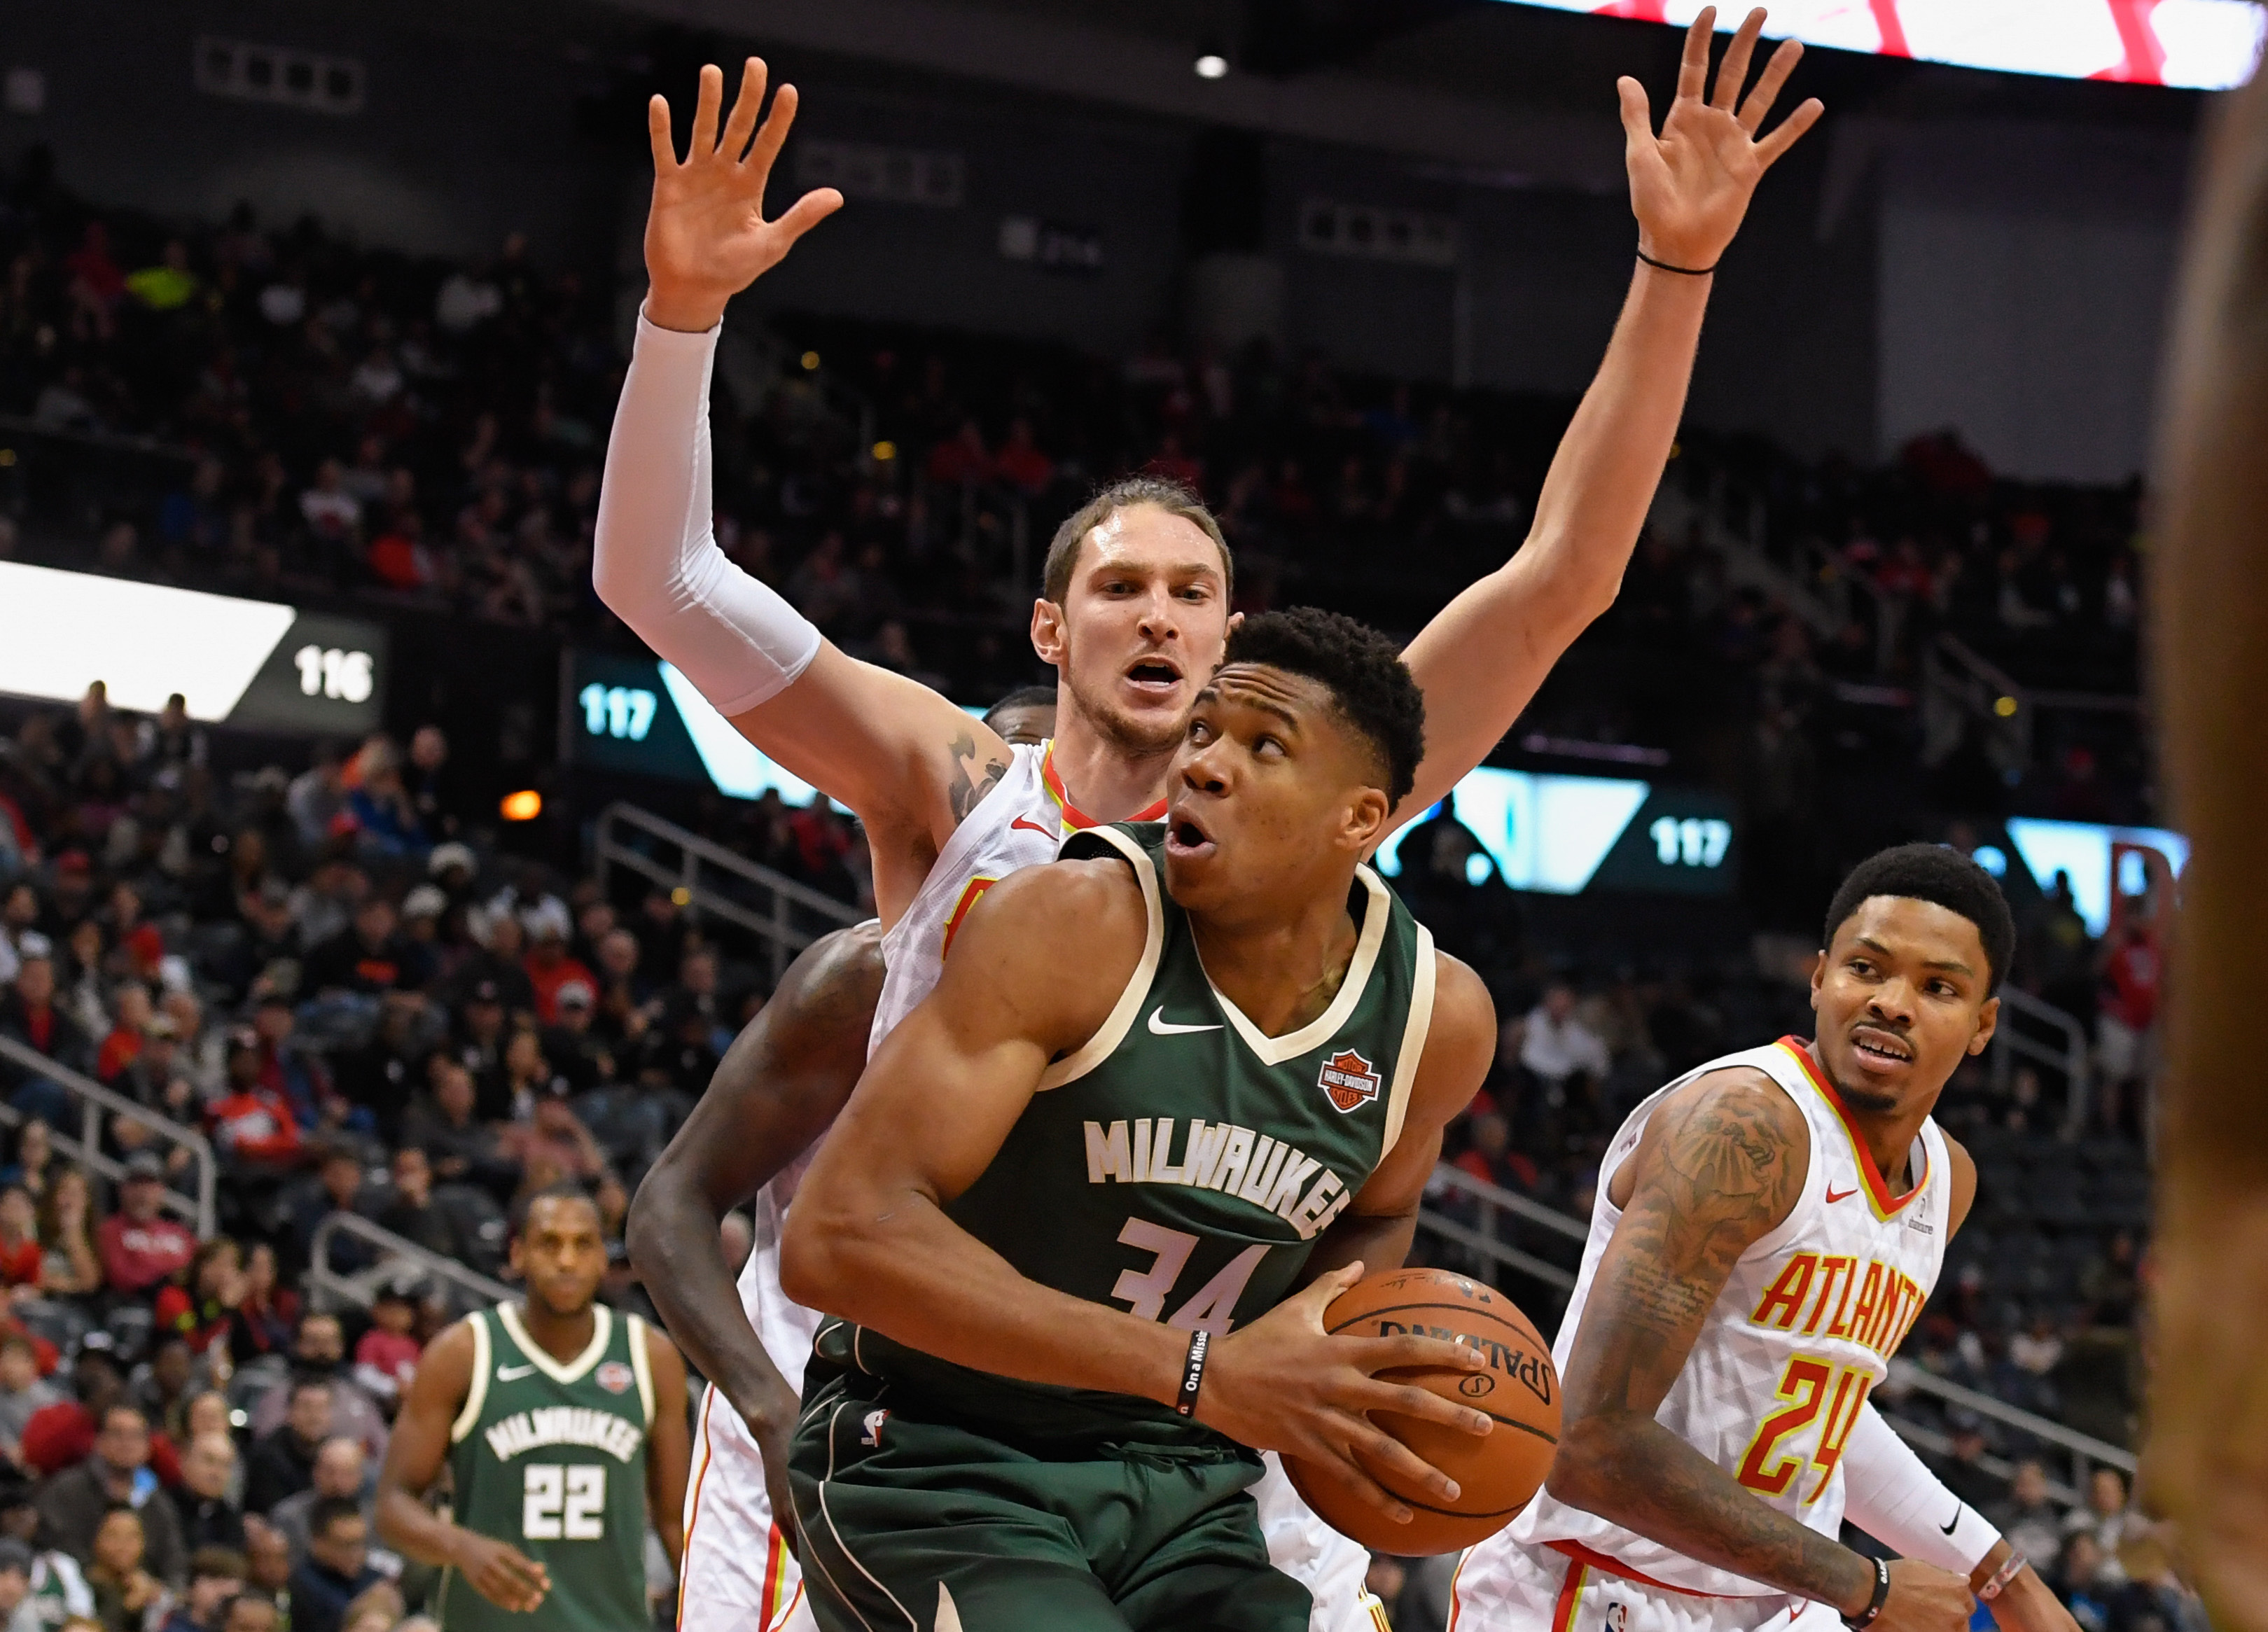 Oct 29, 2017; Atlanta, GA, USA; Milwaukee Bucks forward Giannis Antetokounmpo (34) works against the defense of Atlanta Hawks forward Mike Muscala (31) during the first half at Philips Arena. Mandatory Credit: Dale Zanine-USA TODAY Sports